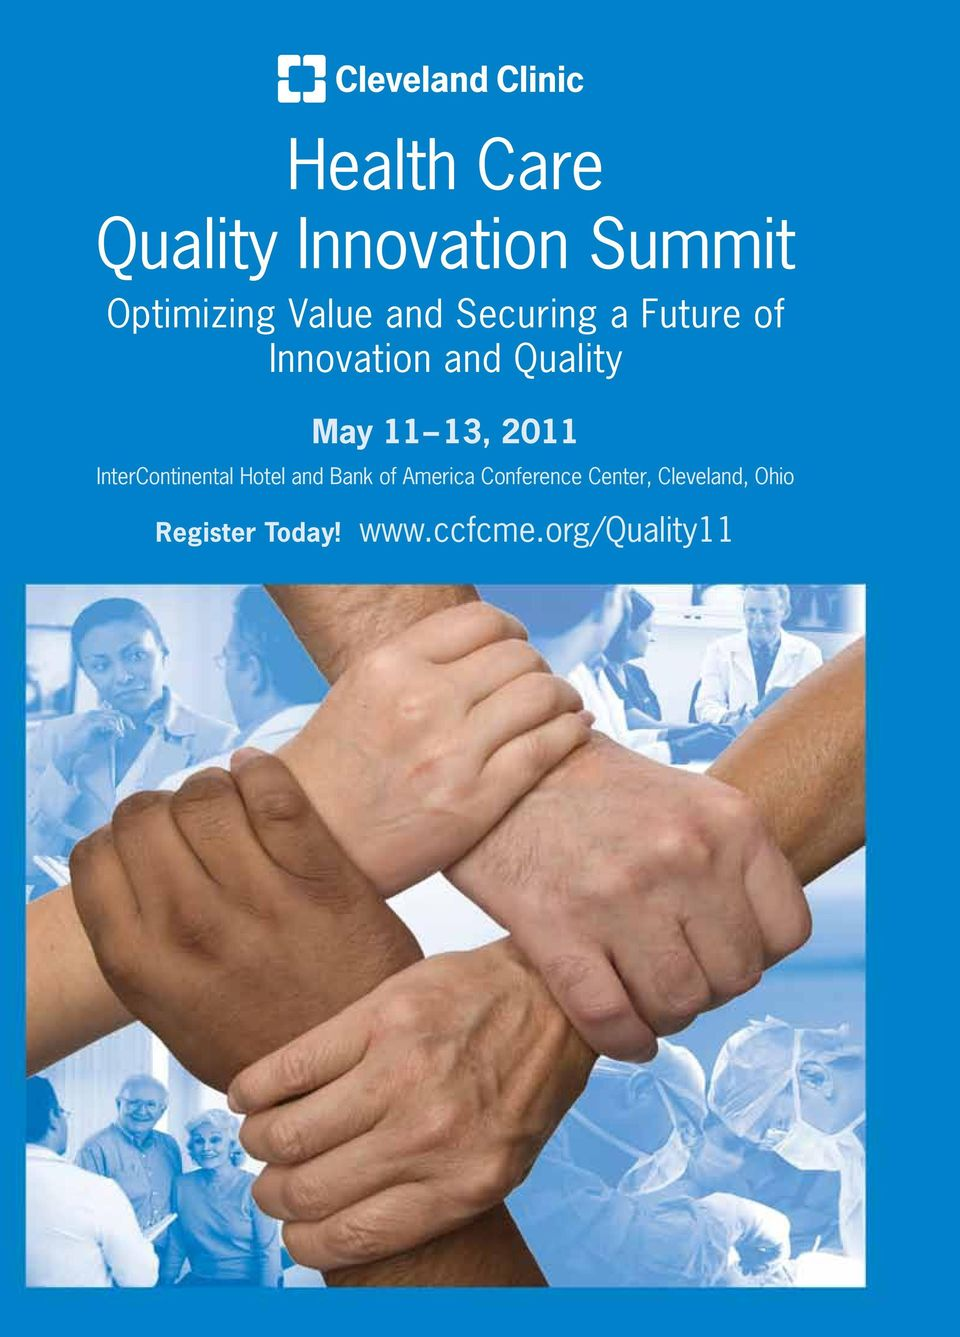 InterContinental Hotel and Bank of America Conference